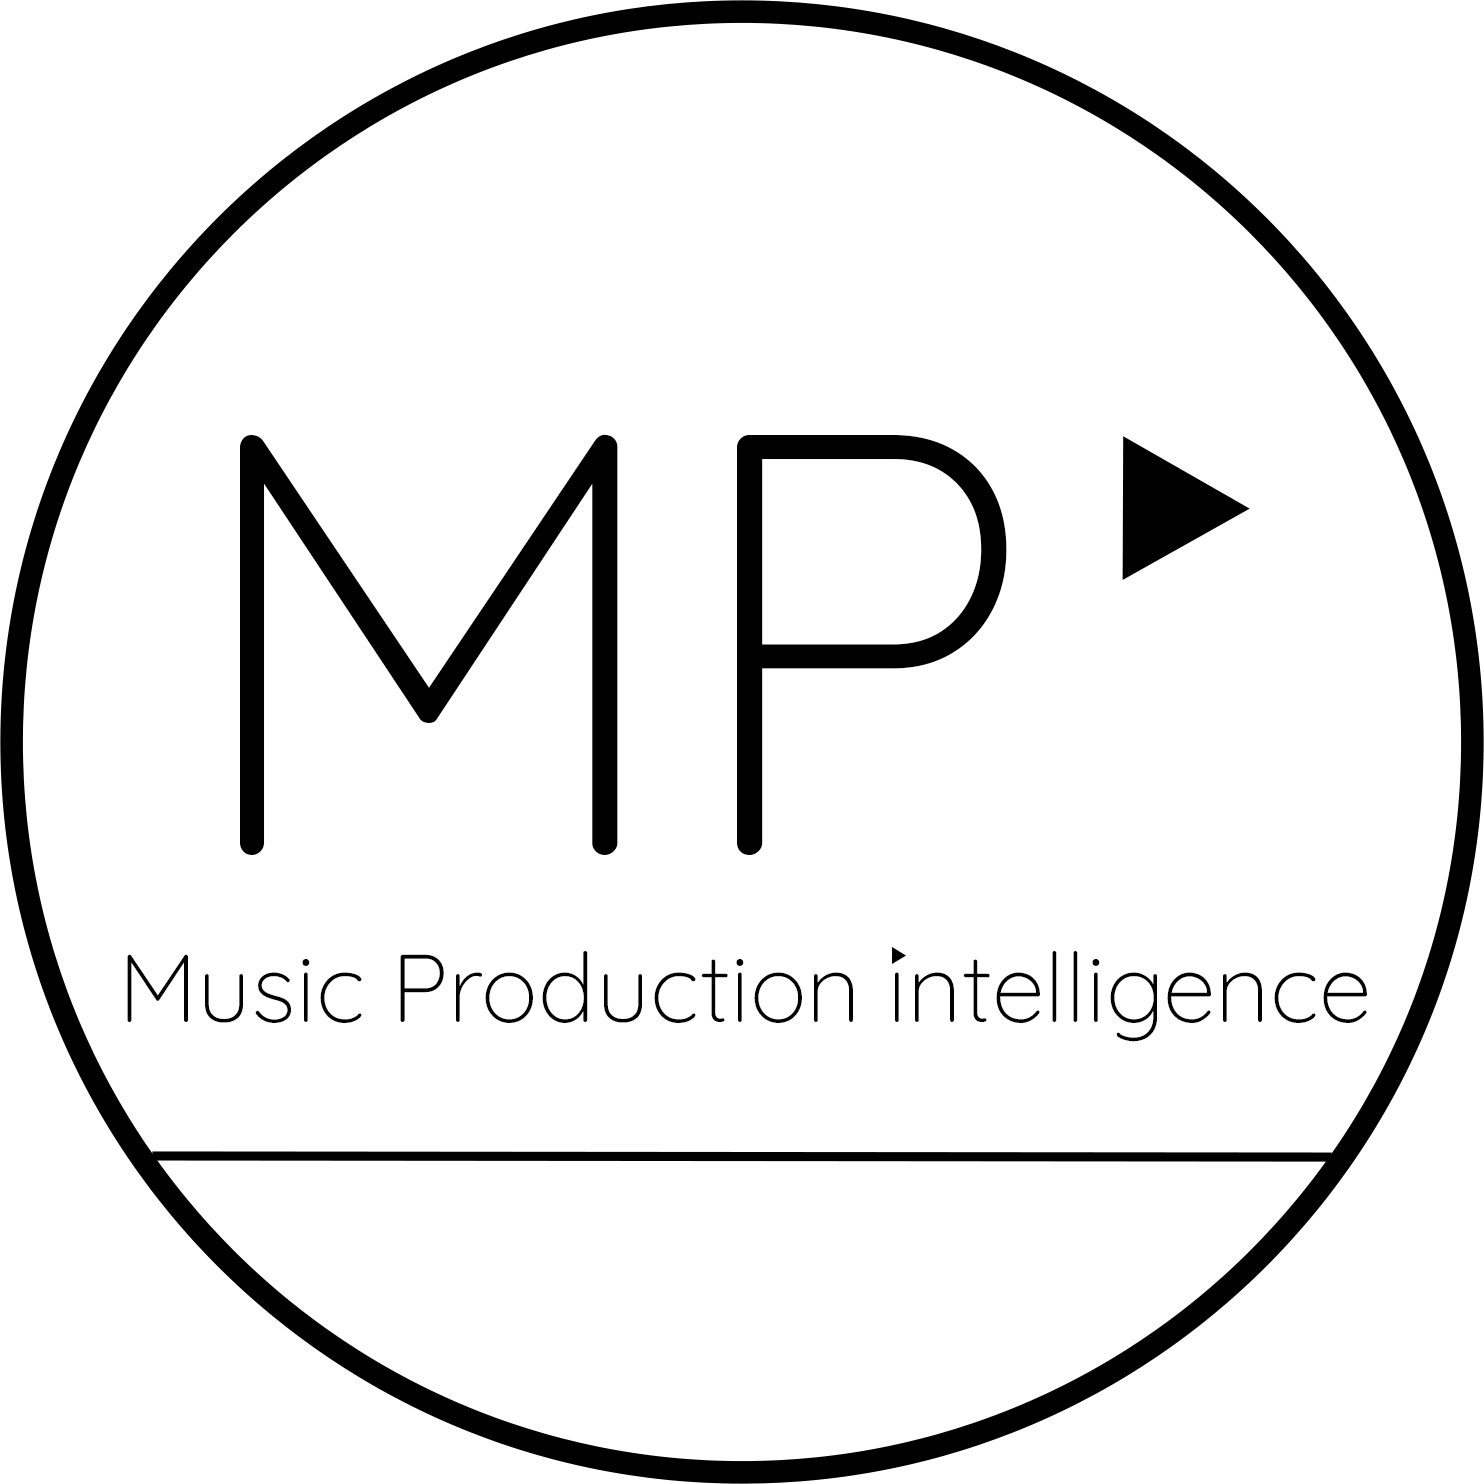 Music Production Intelligence - The shortcut to your music